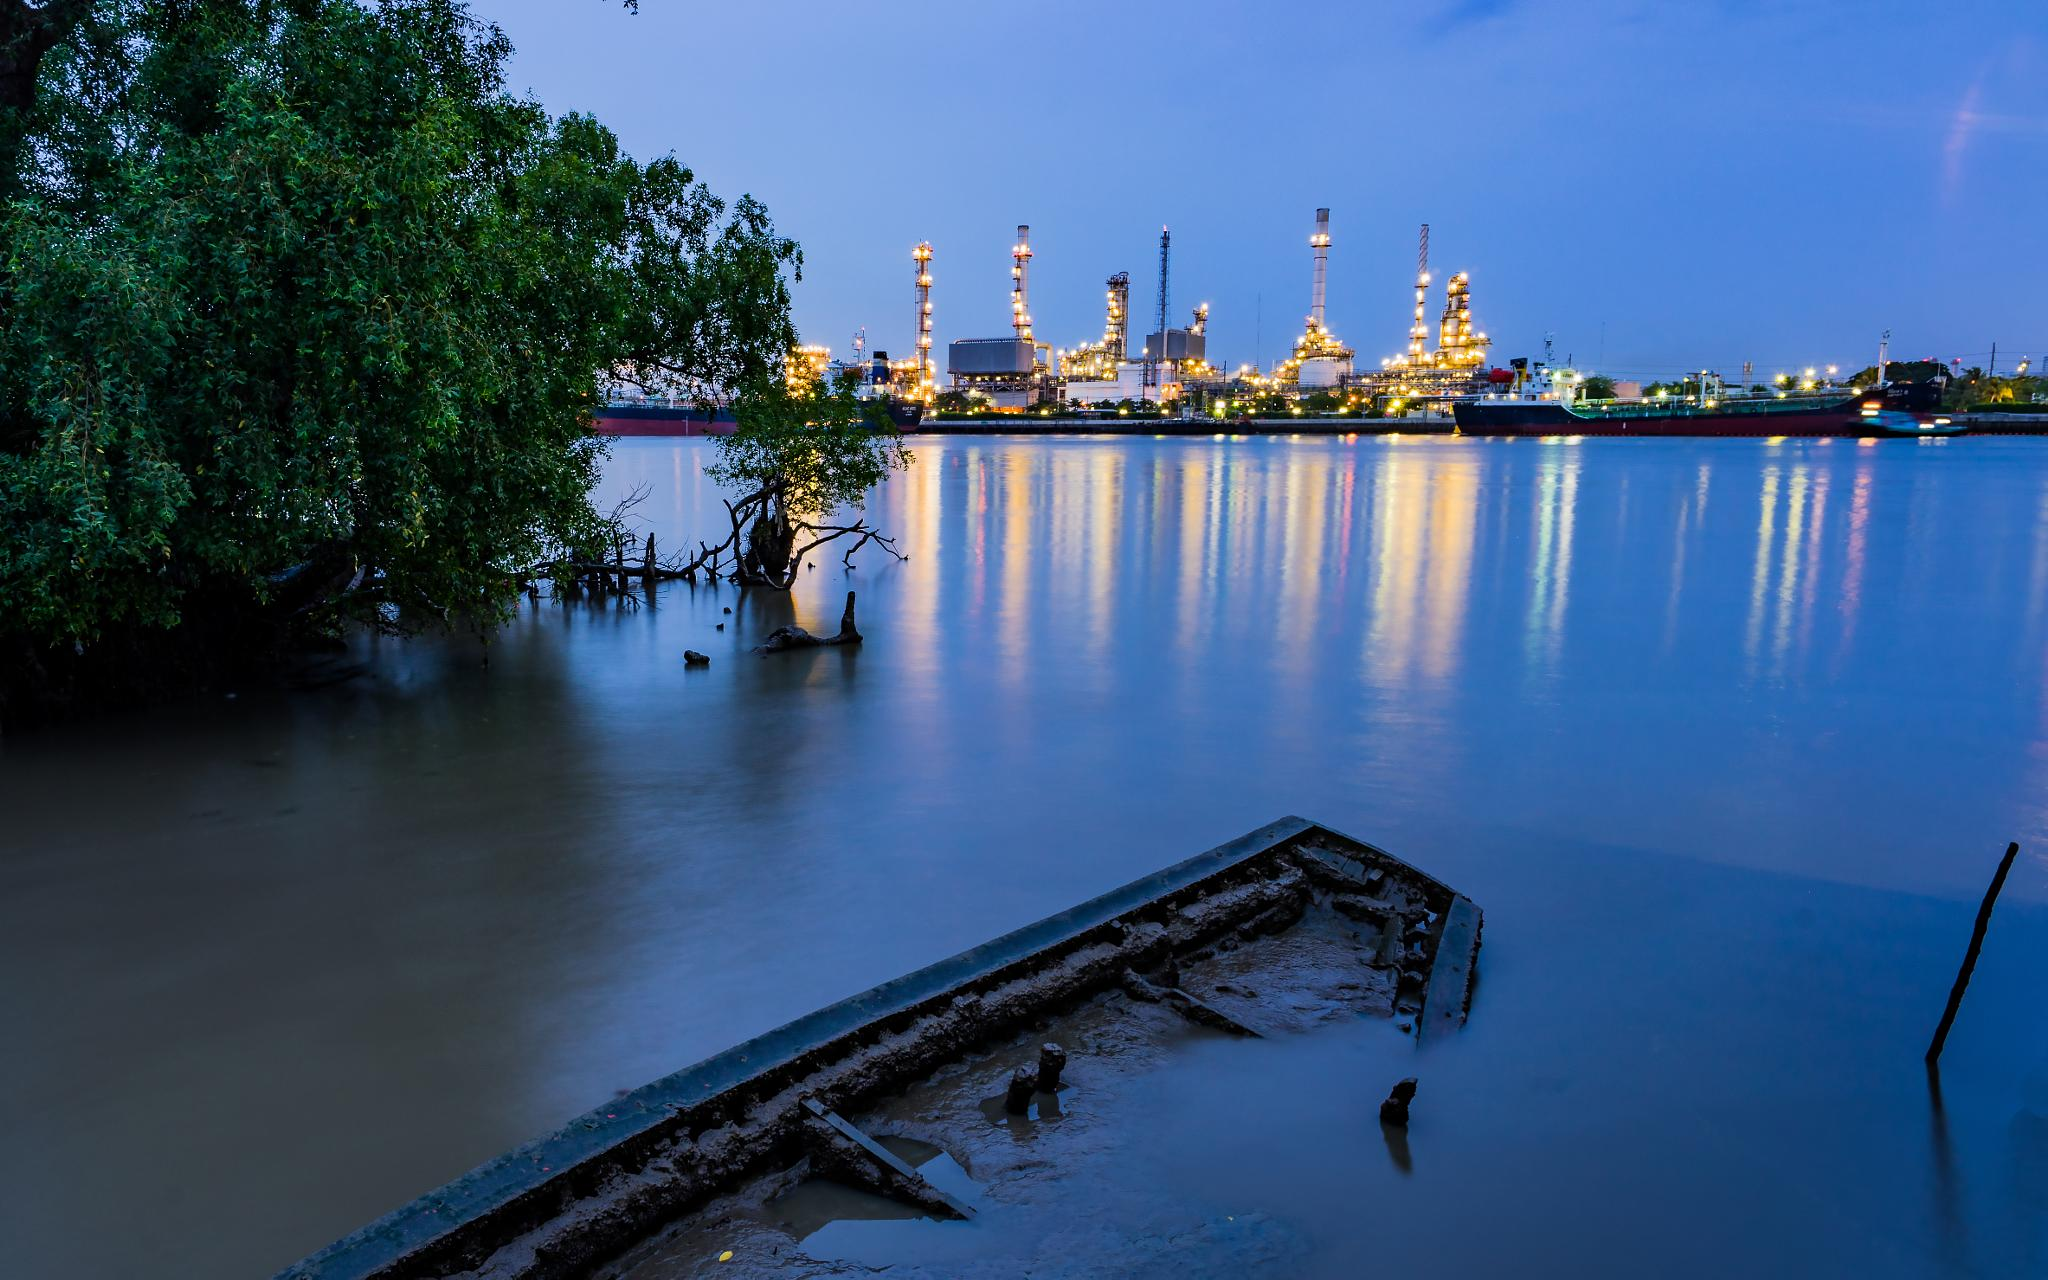 Refinery HDR Version by Nuttapong Tirayon